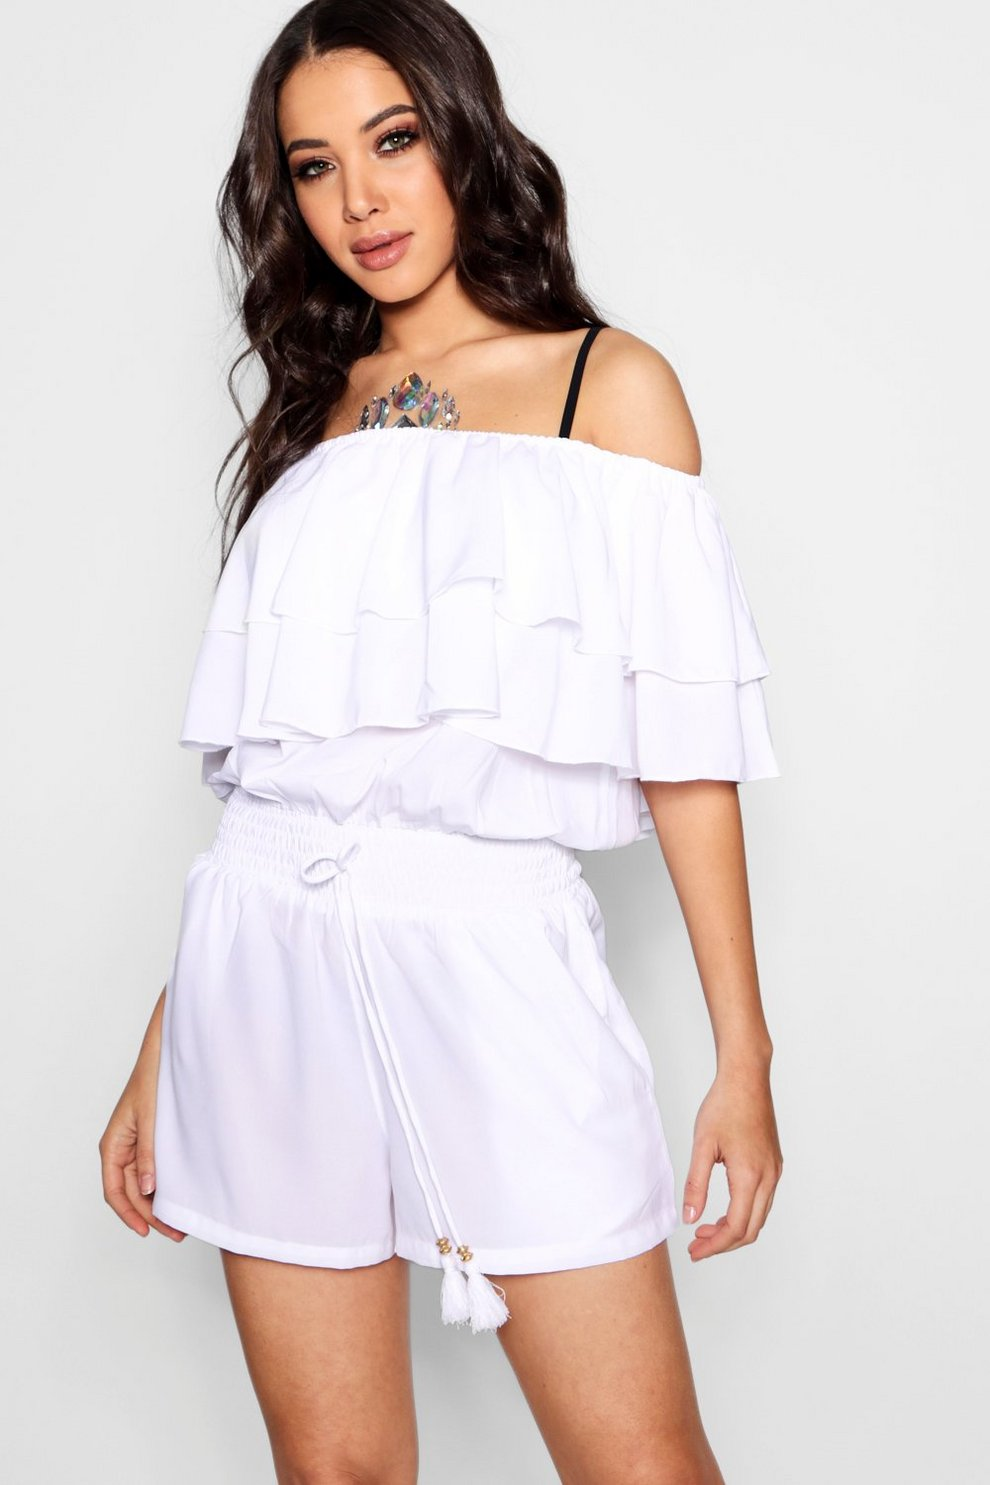 Boohoo Bardot Ruffle Beach Playsuit Discount Low Shipping Best Particular Discount Outlet Cheapest Price Online llH49mzk7X